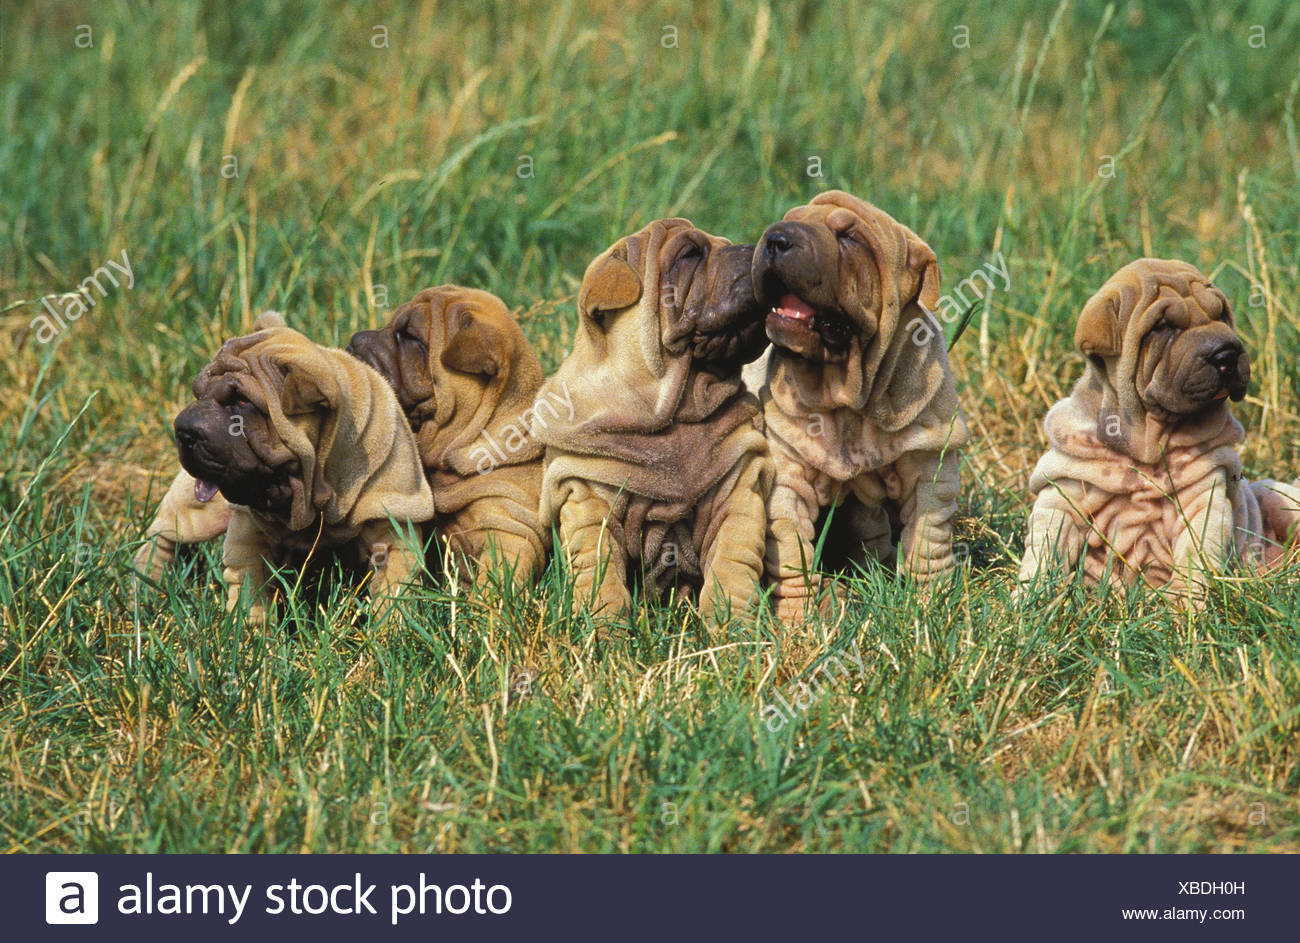 Shar Pei Hunde, puppies, meadow, sit, - Stock Image